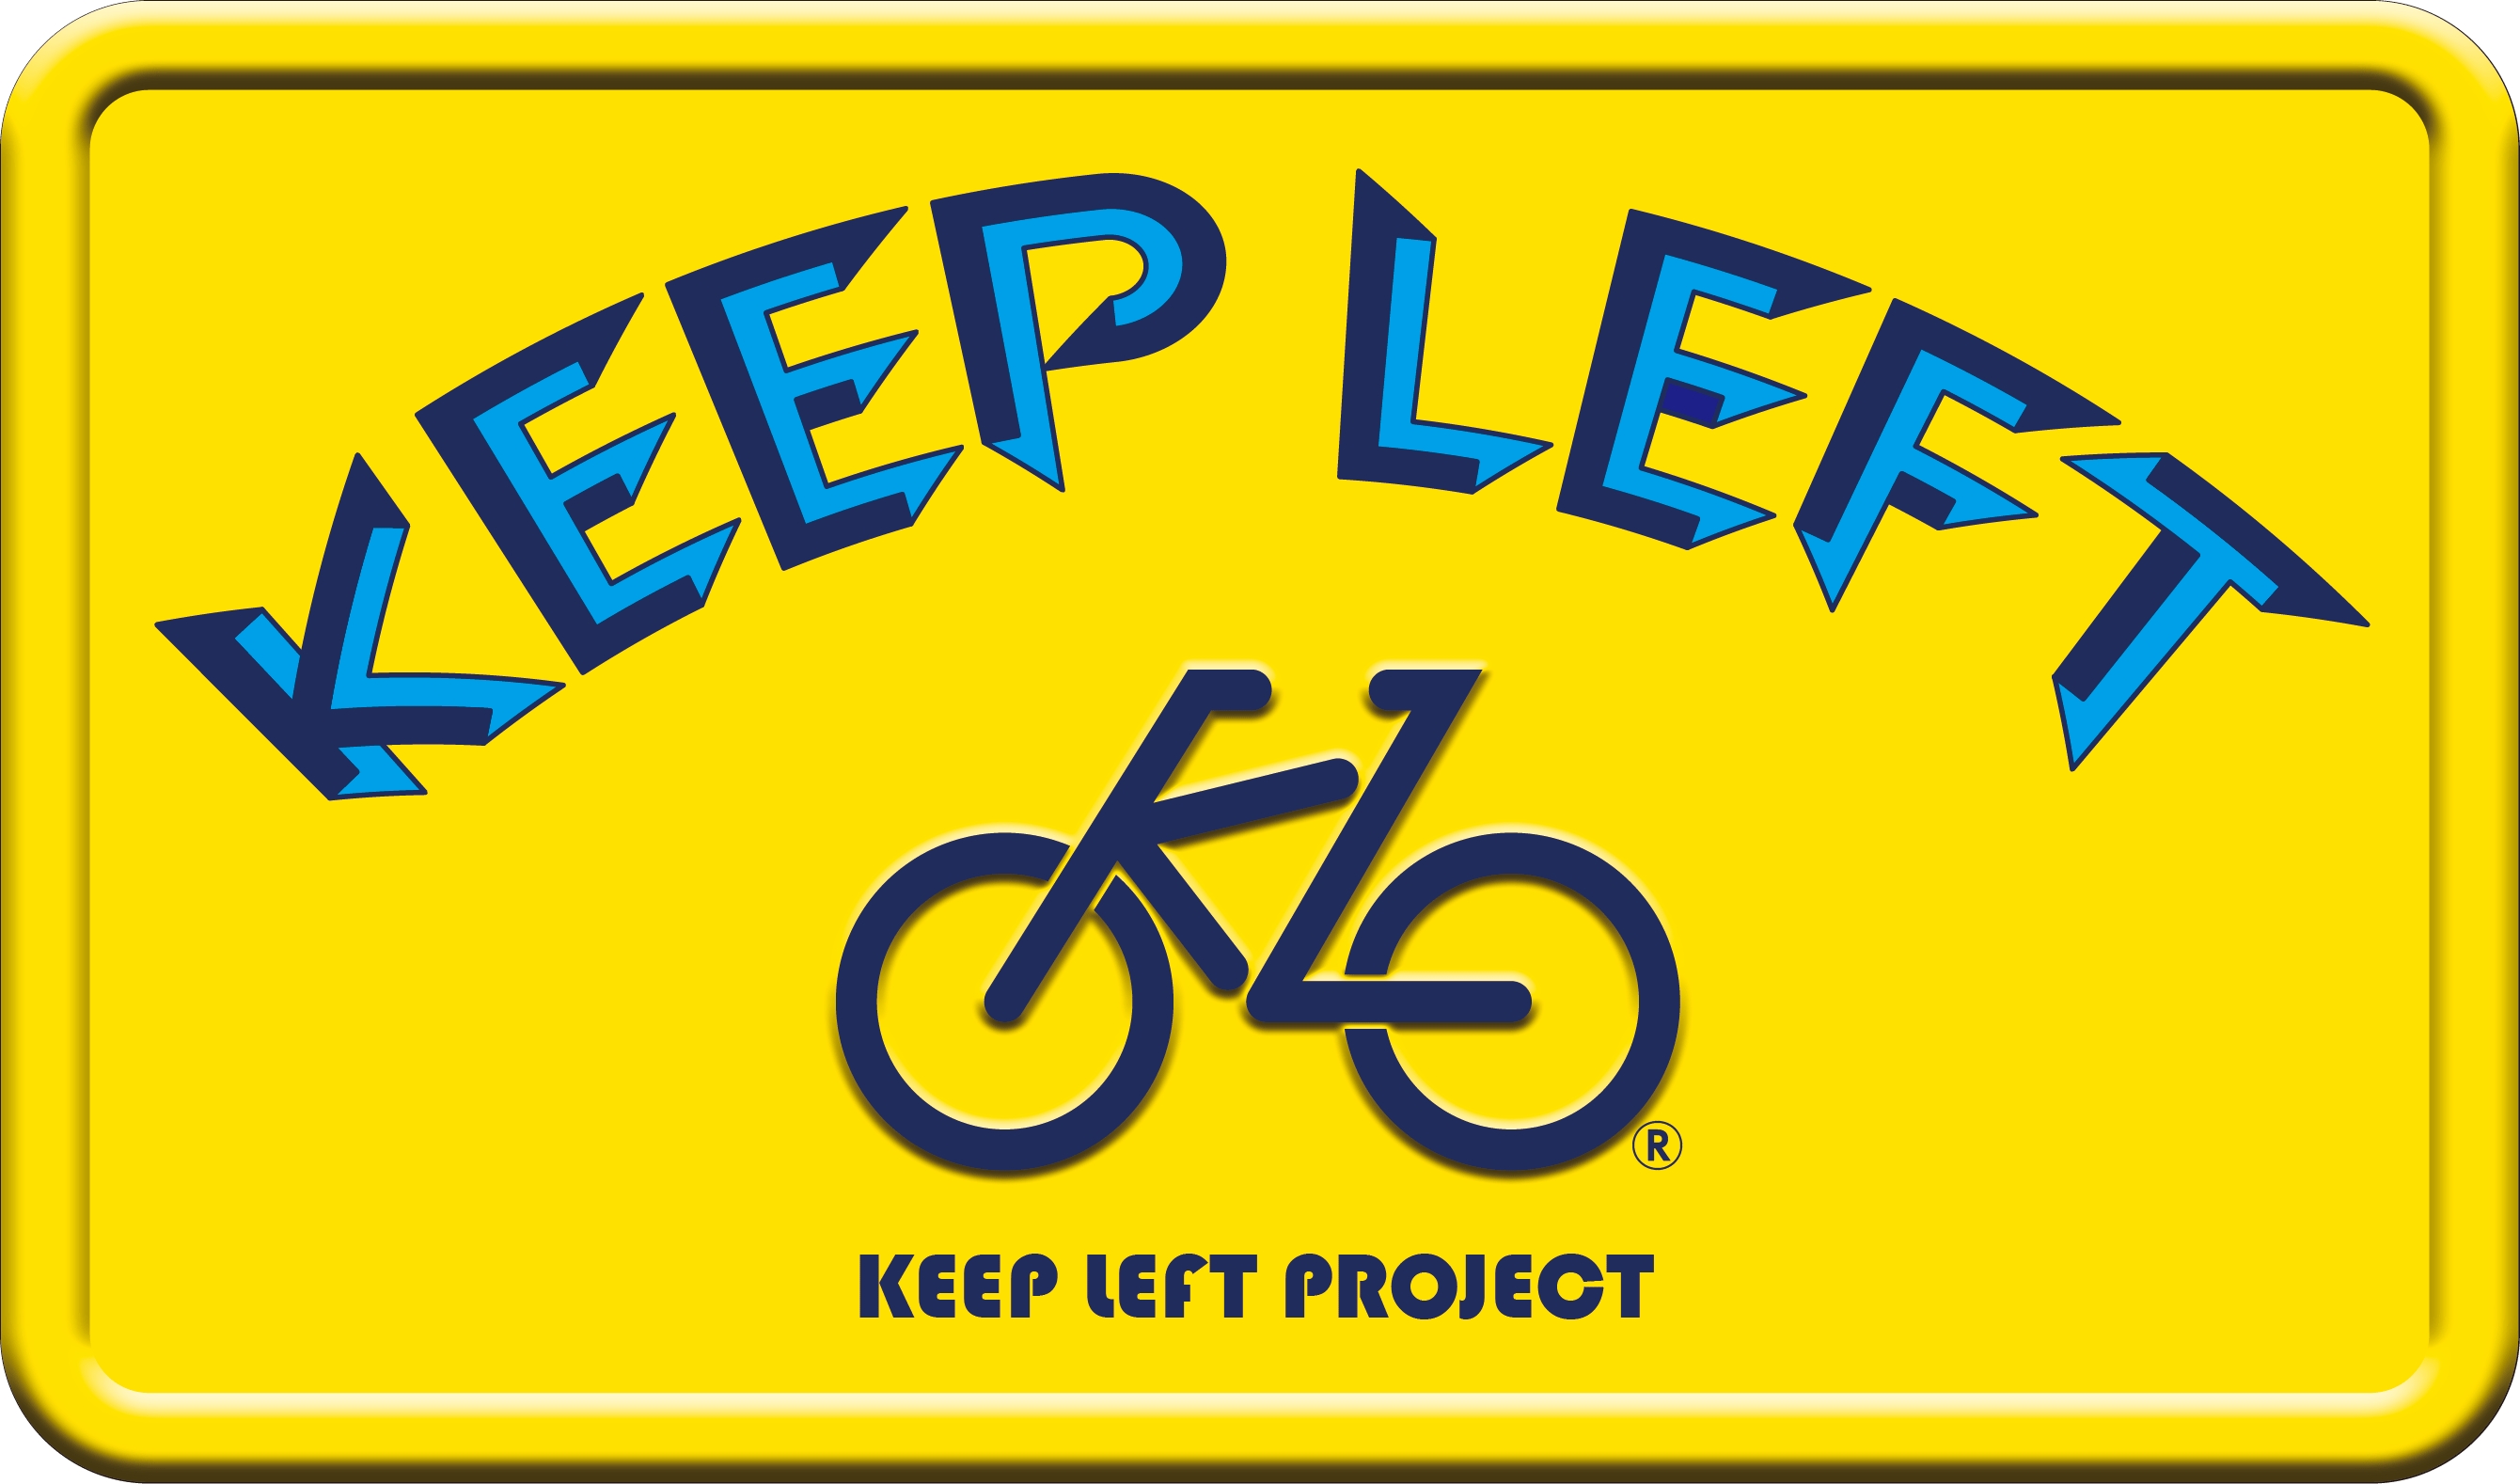 KEEP LEFT PROJECT